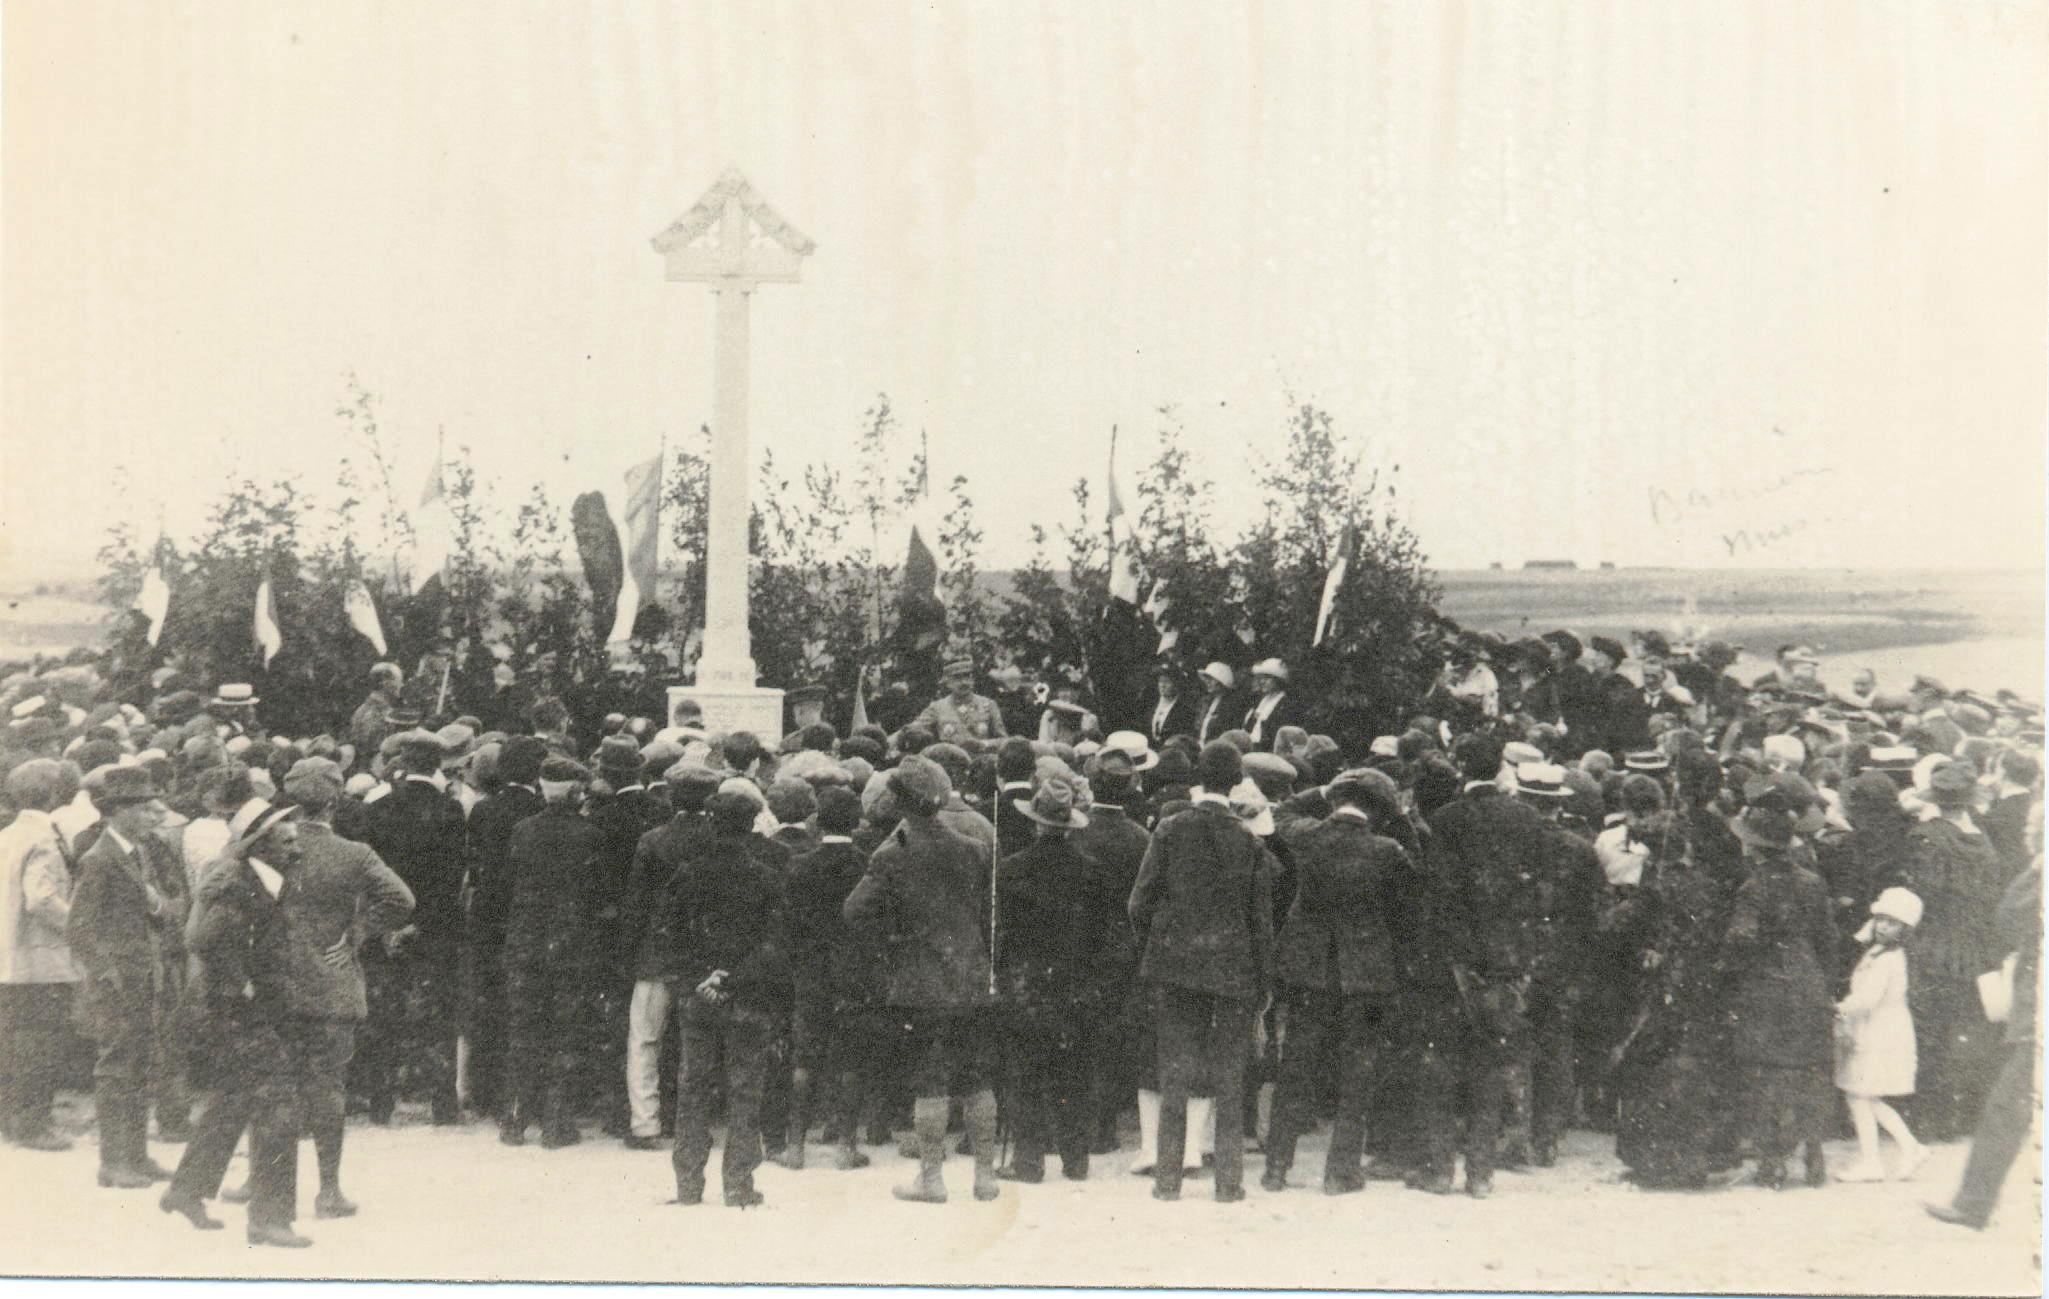 Fig. 17. Inauguration du monument de Malassise, 1921 (Coll. C. Saunier).